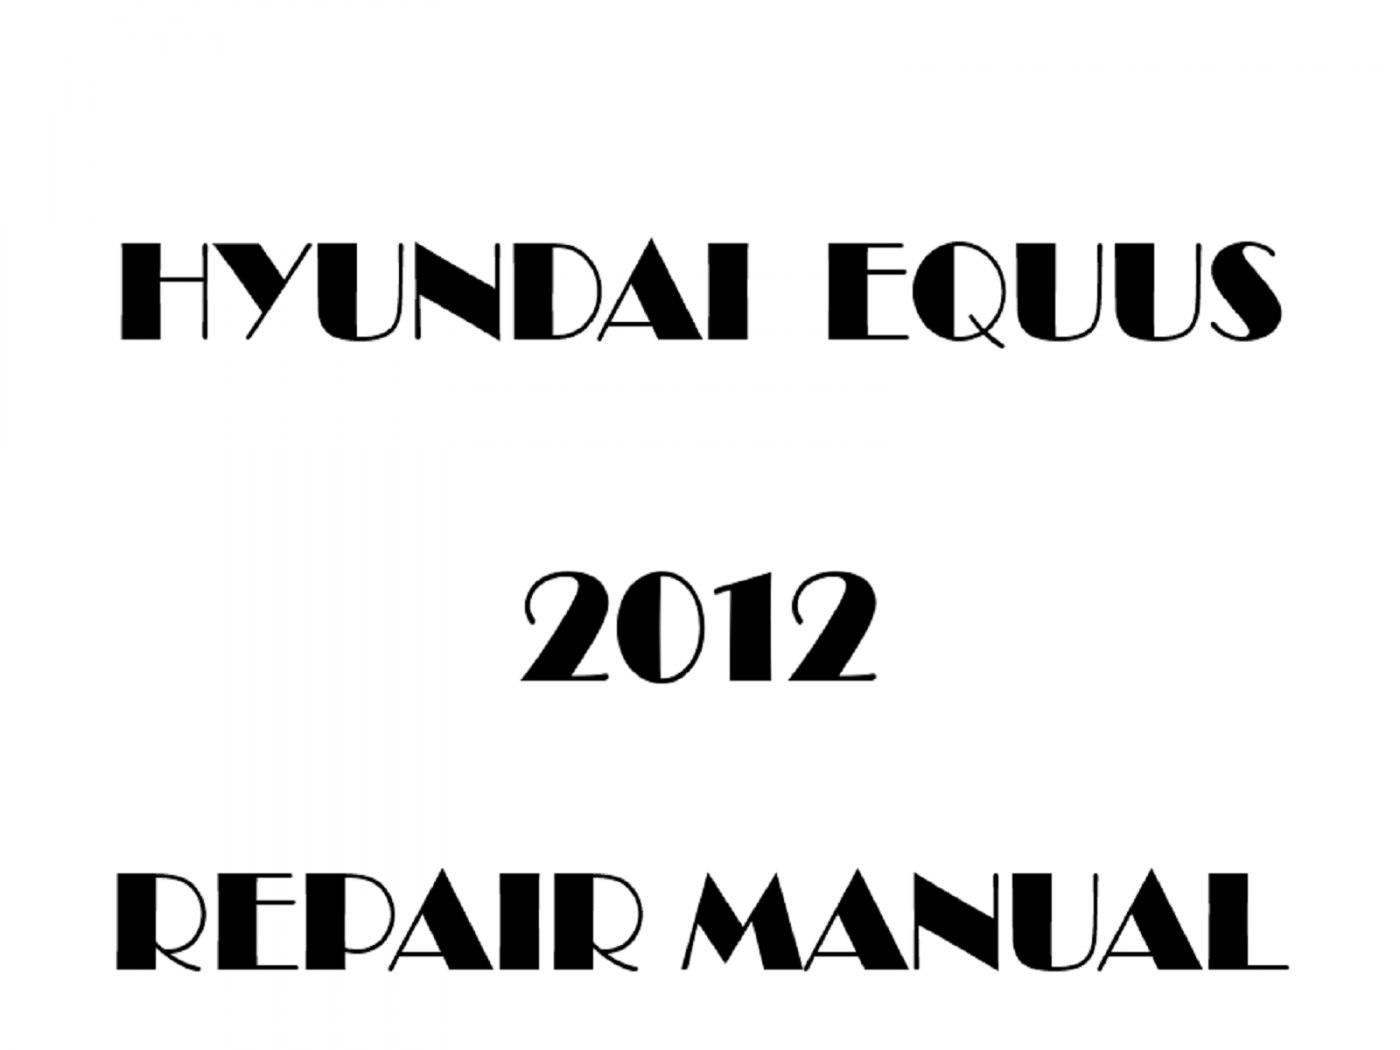 2012 Hyundai Equus repair manual